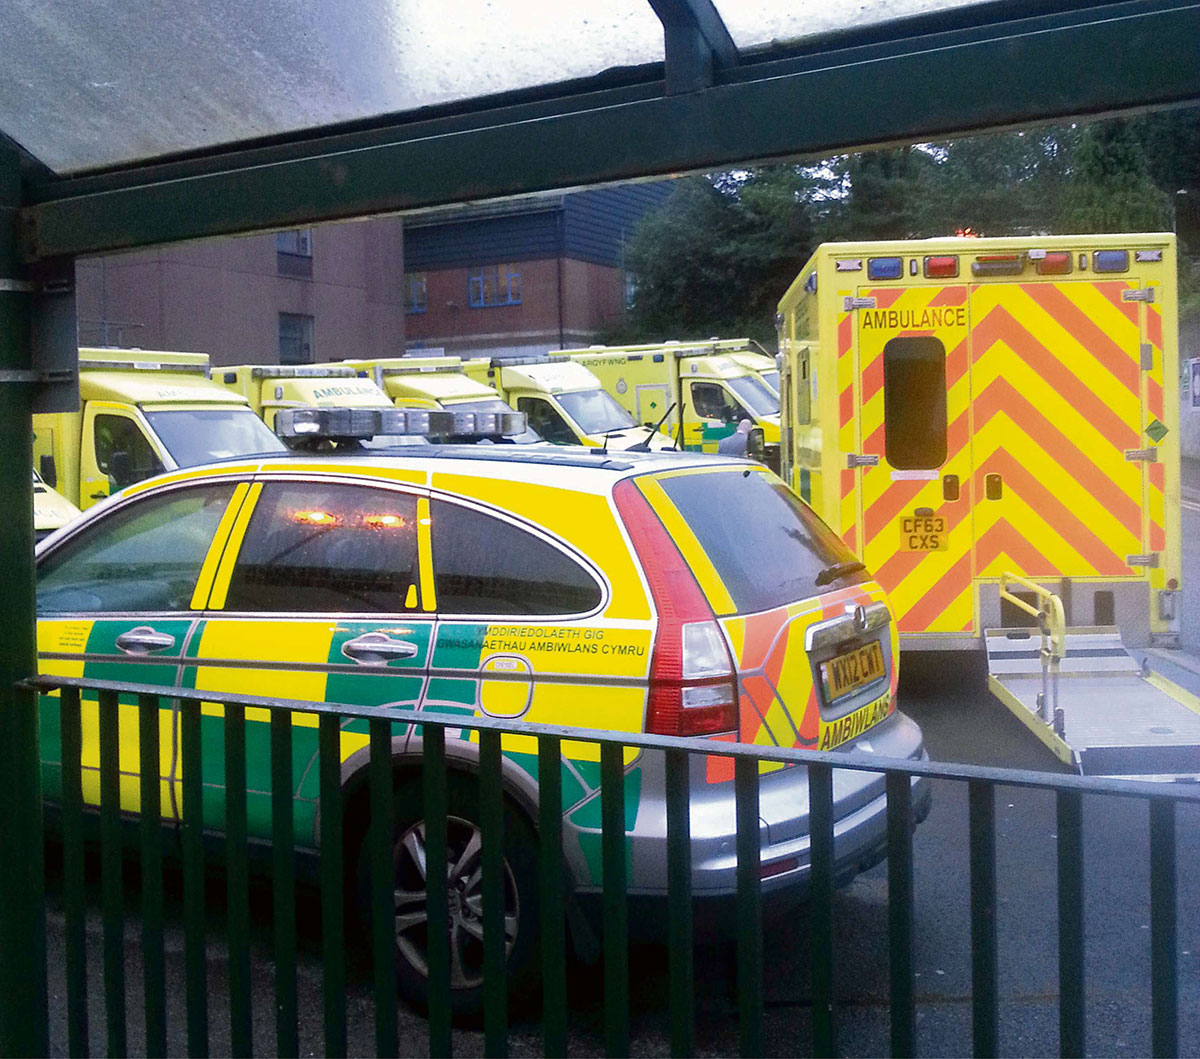 Ambulances delayed for hours in Newport A&E jam